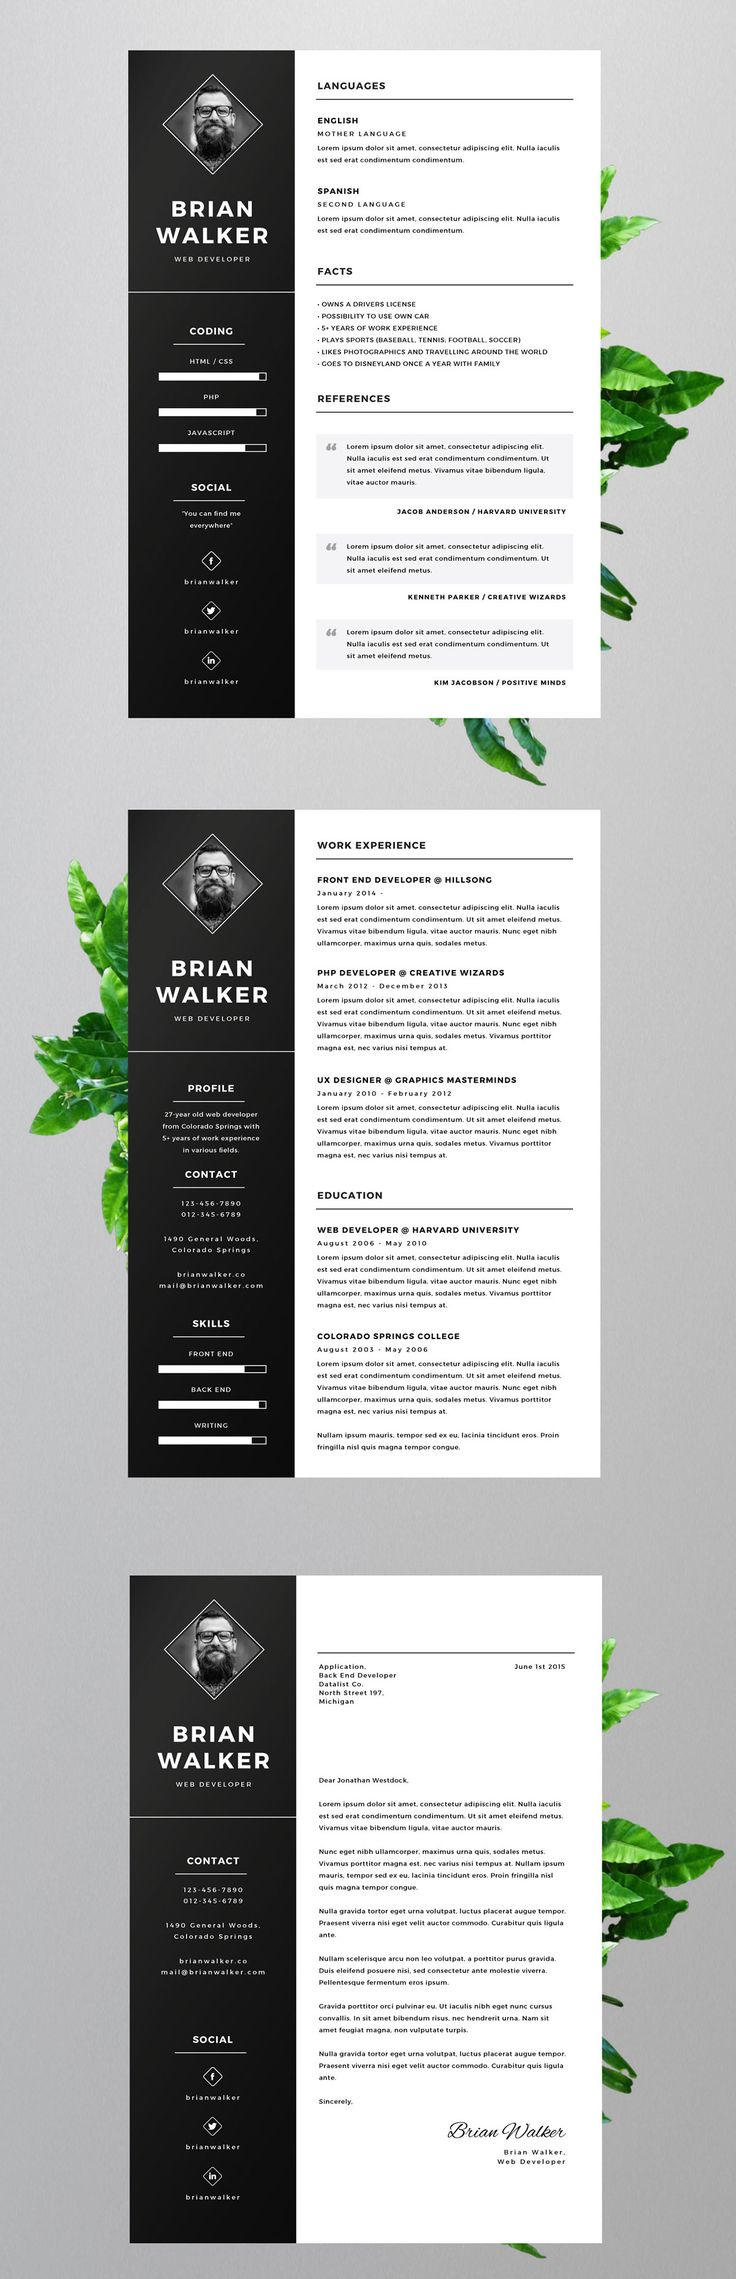 25 best free downloadable resume templates by industry images on pinterest cv template 2nd grades and cover letters - Best Microsoft Word Resume Templates